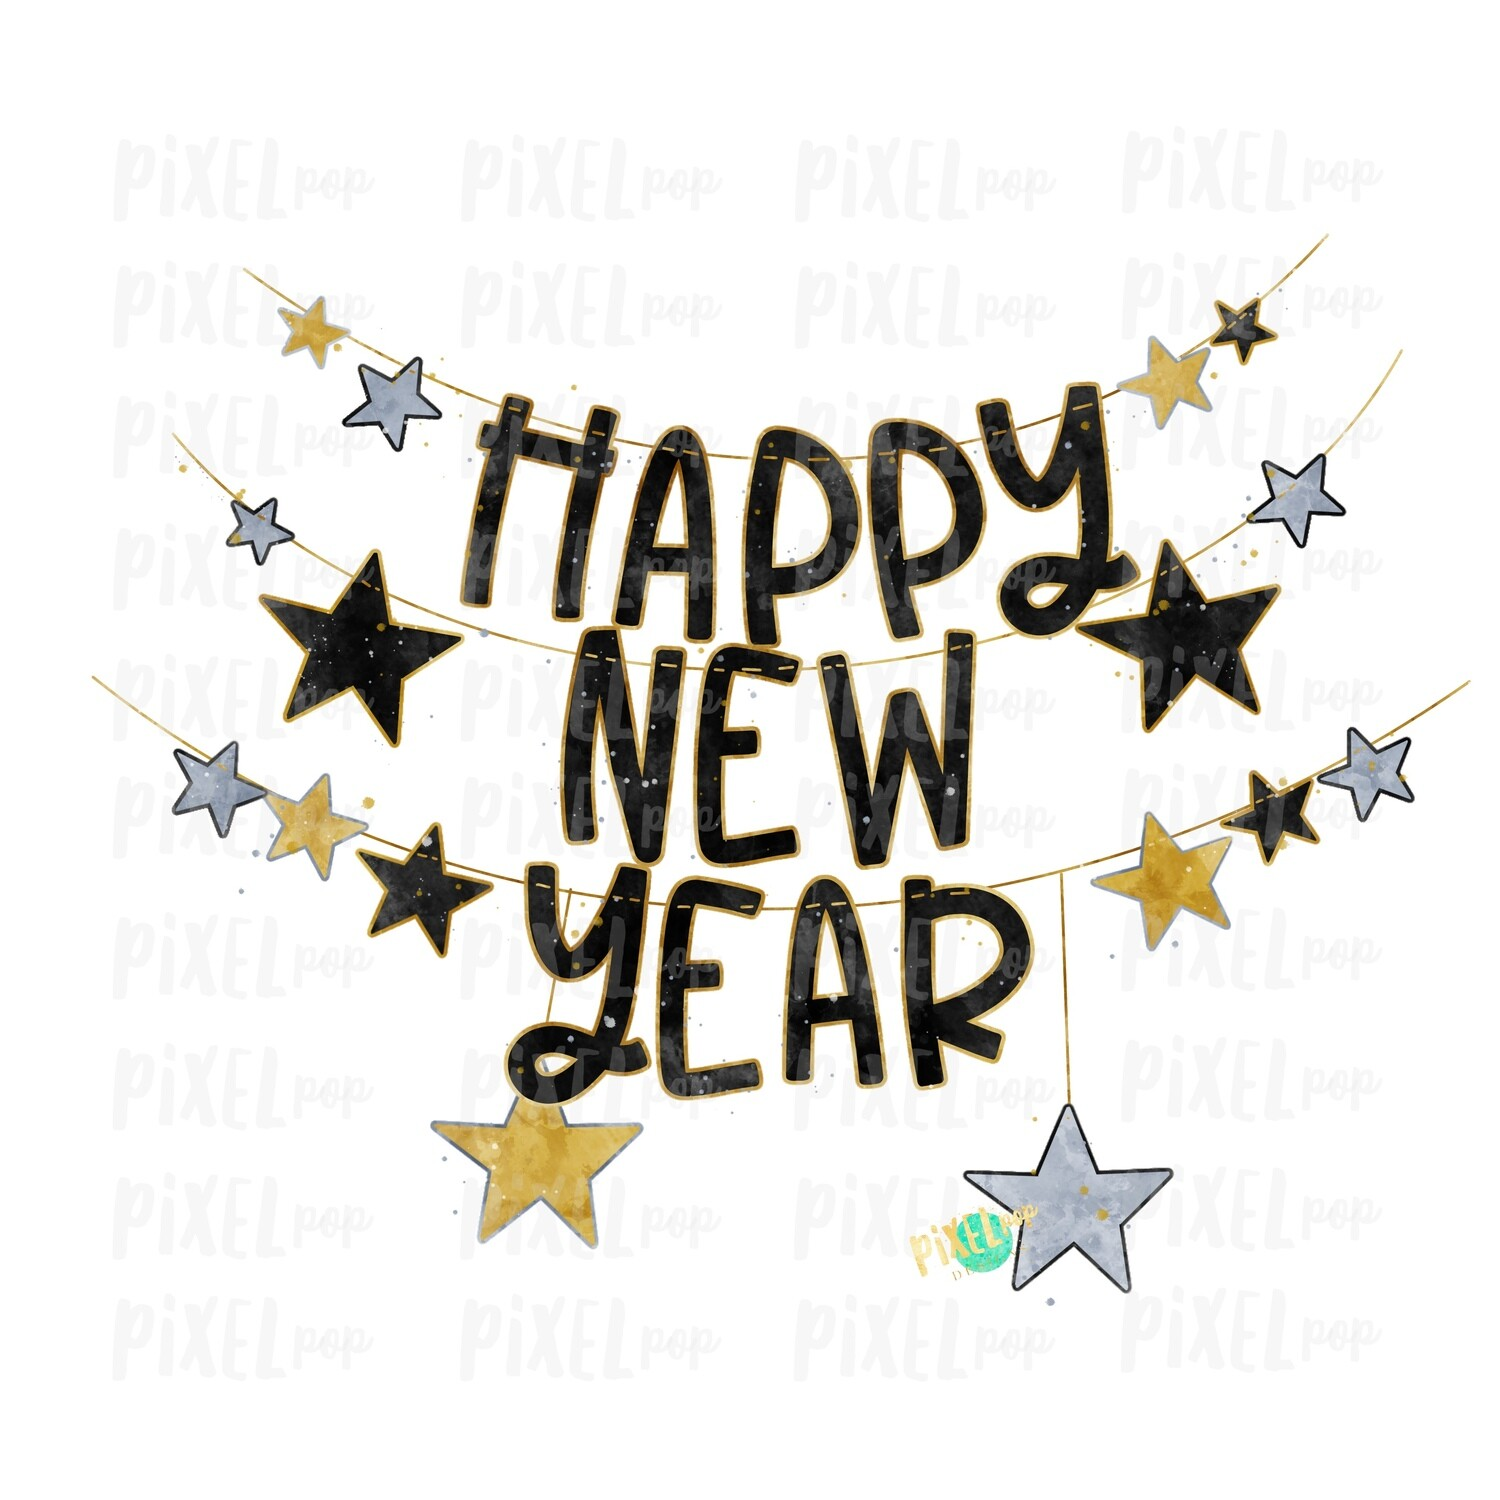 Happy New Year Banner New Year's Eve Sublimation Art PNG | Christmas Art | Drawn Design | Sublimation PNG | Digital Download | Printable